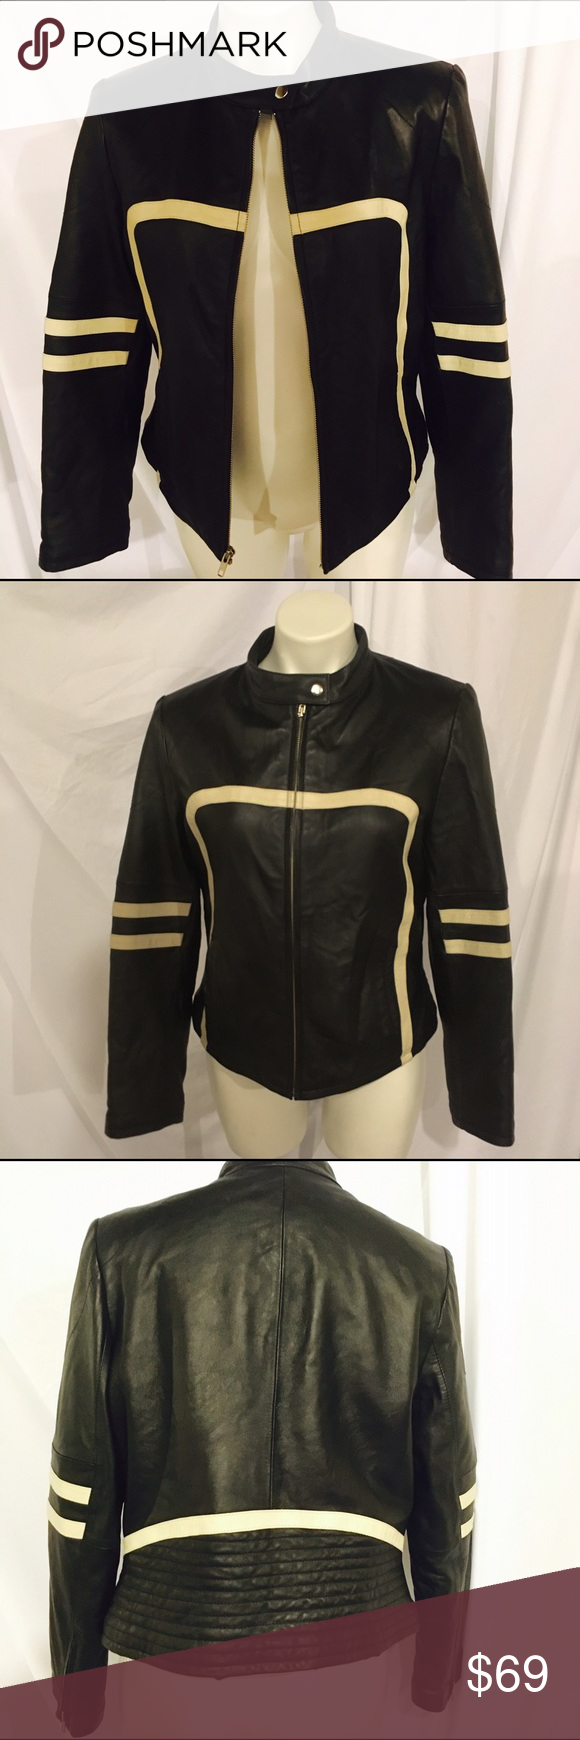 Wilsons Leather Maxima Racer Jacket Wilsons leather